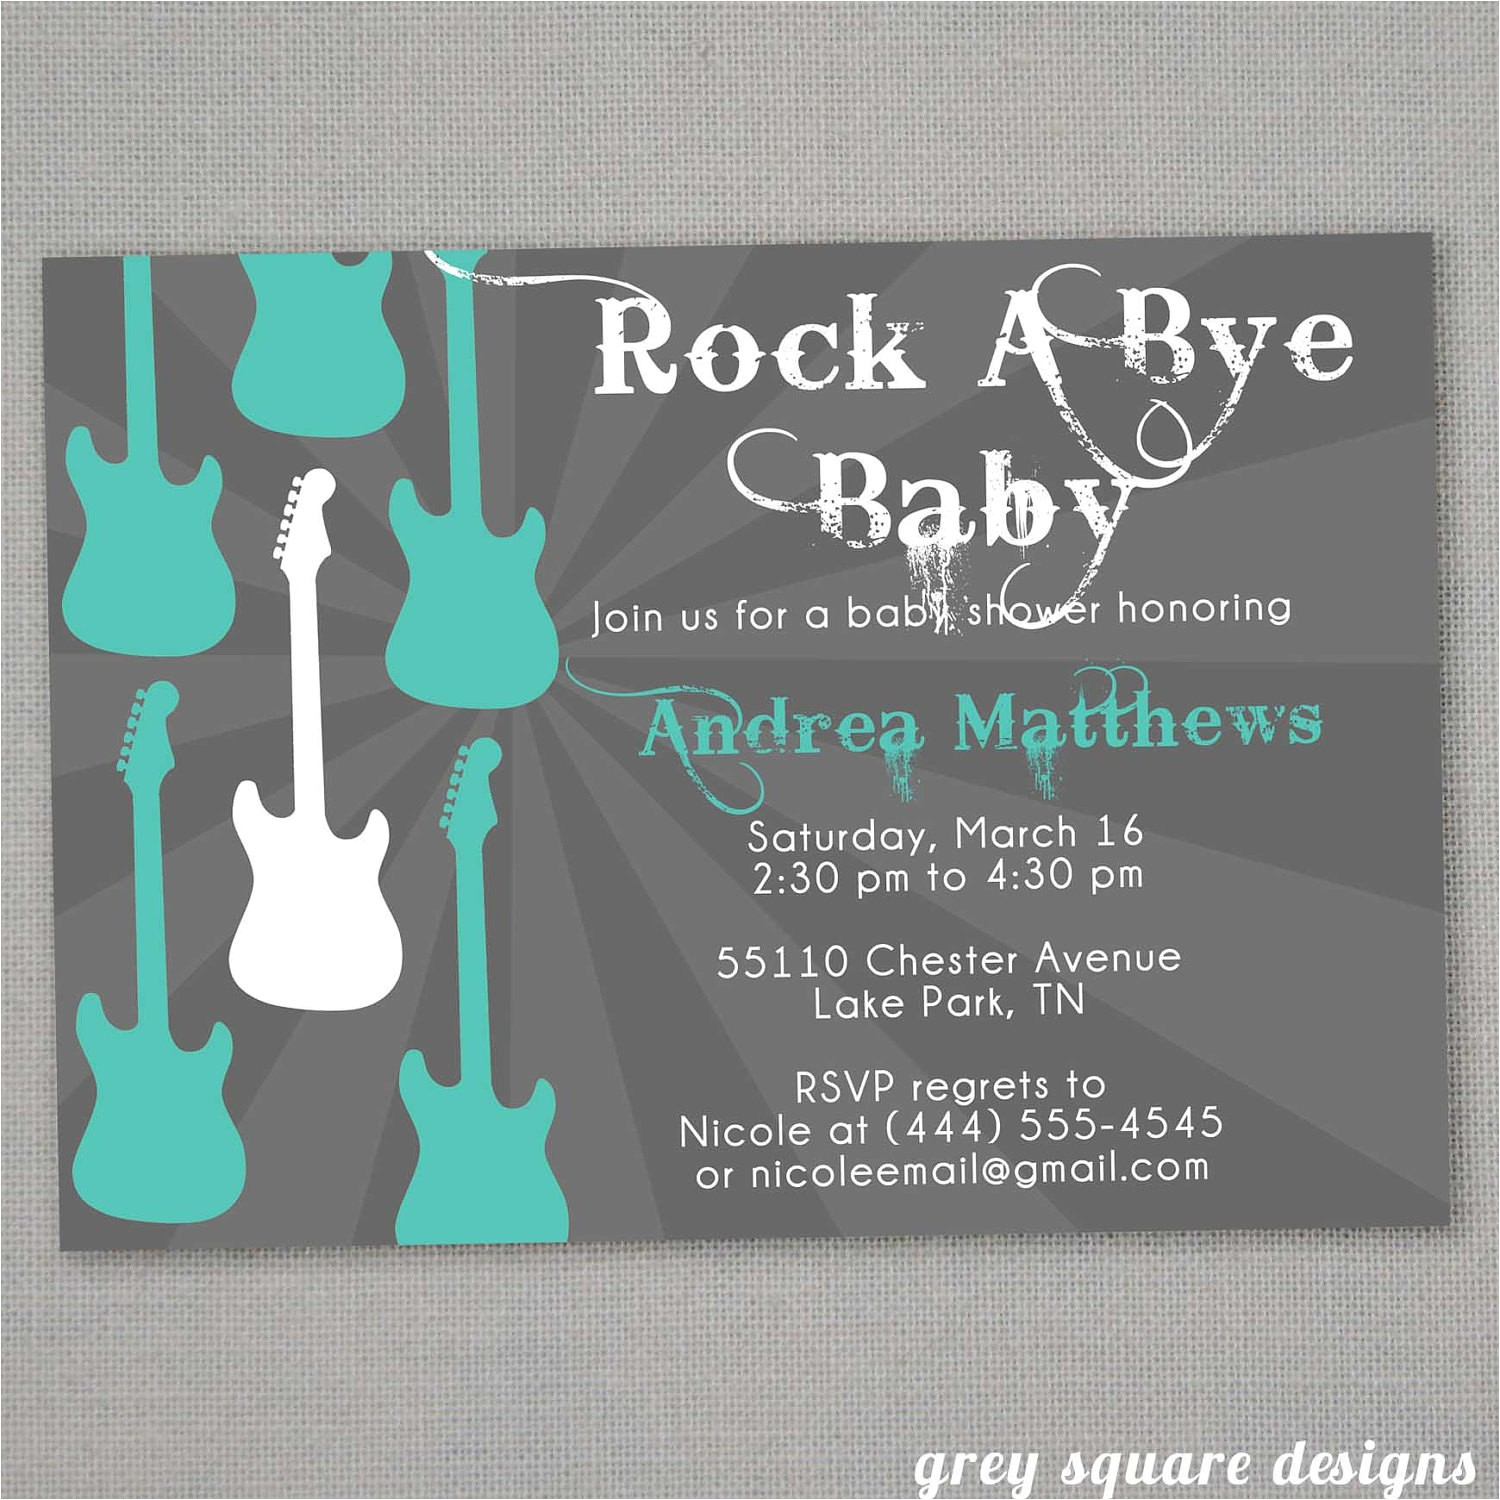 Rock A bye Baby Shower Invitations Rock A bye Baby Shower Invitation by Greysquare On Etsy